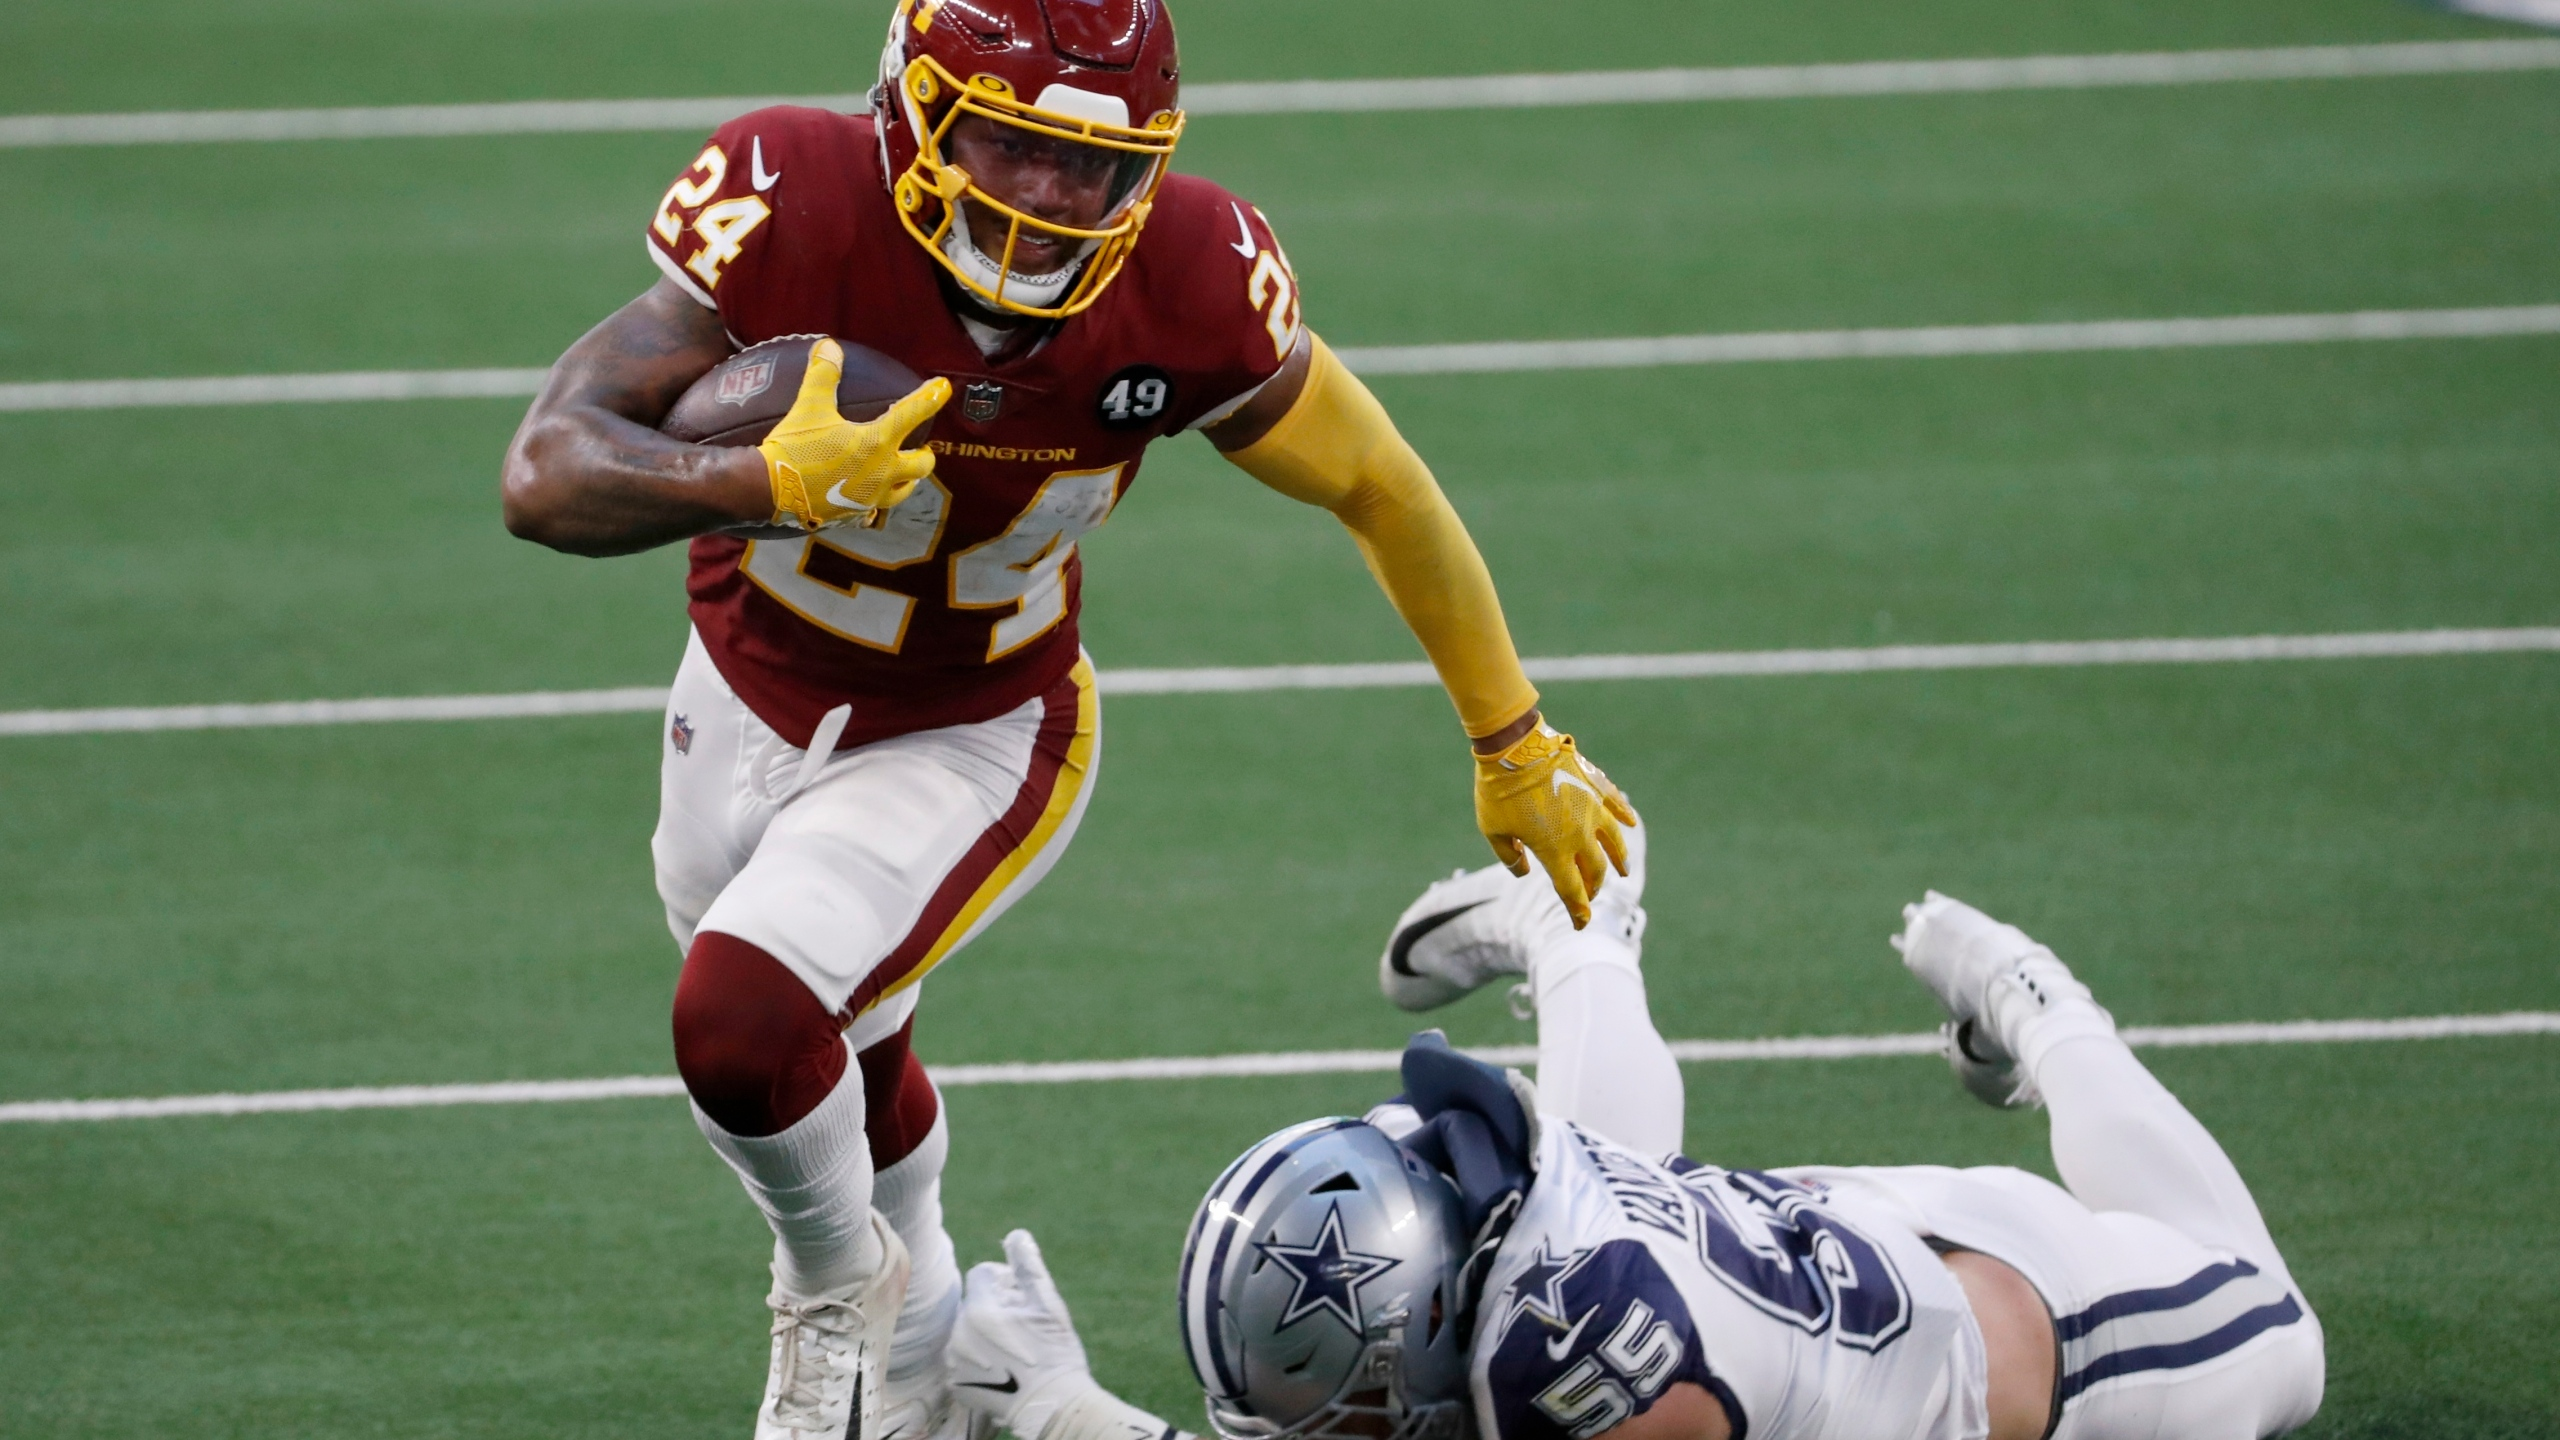 Smith Washington In 1st After Thanksgiving Win Over Cowboys Brproud Com